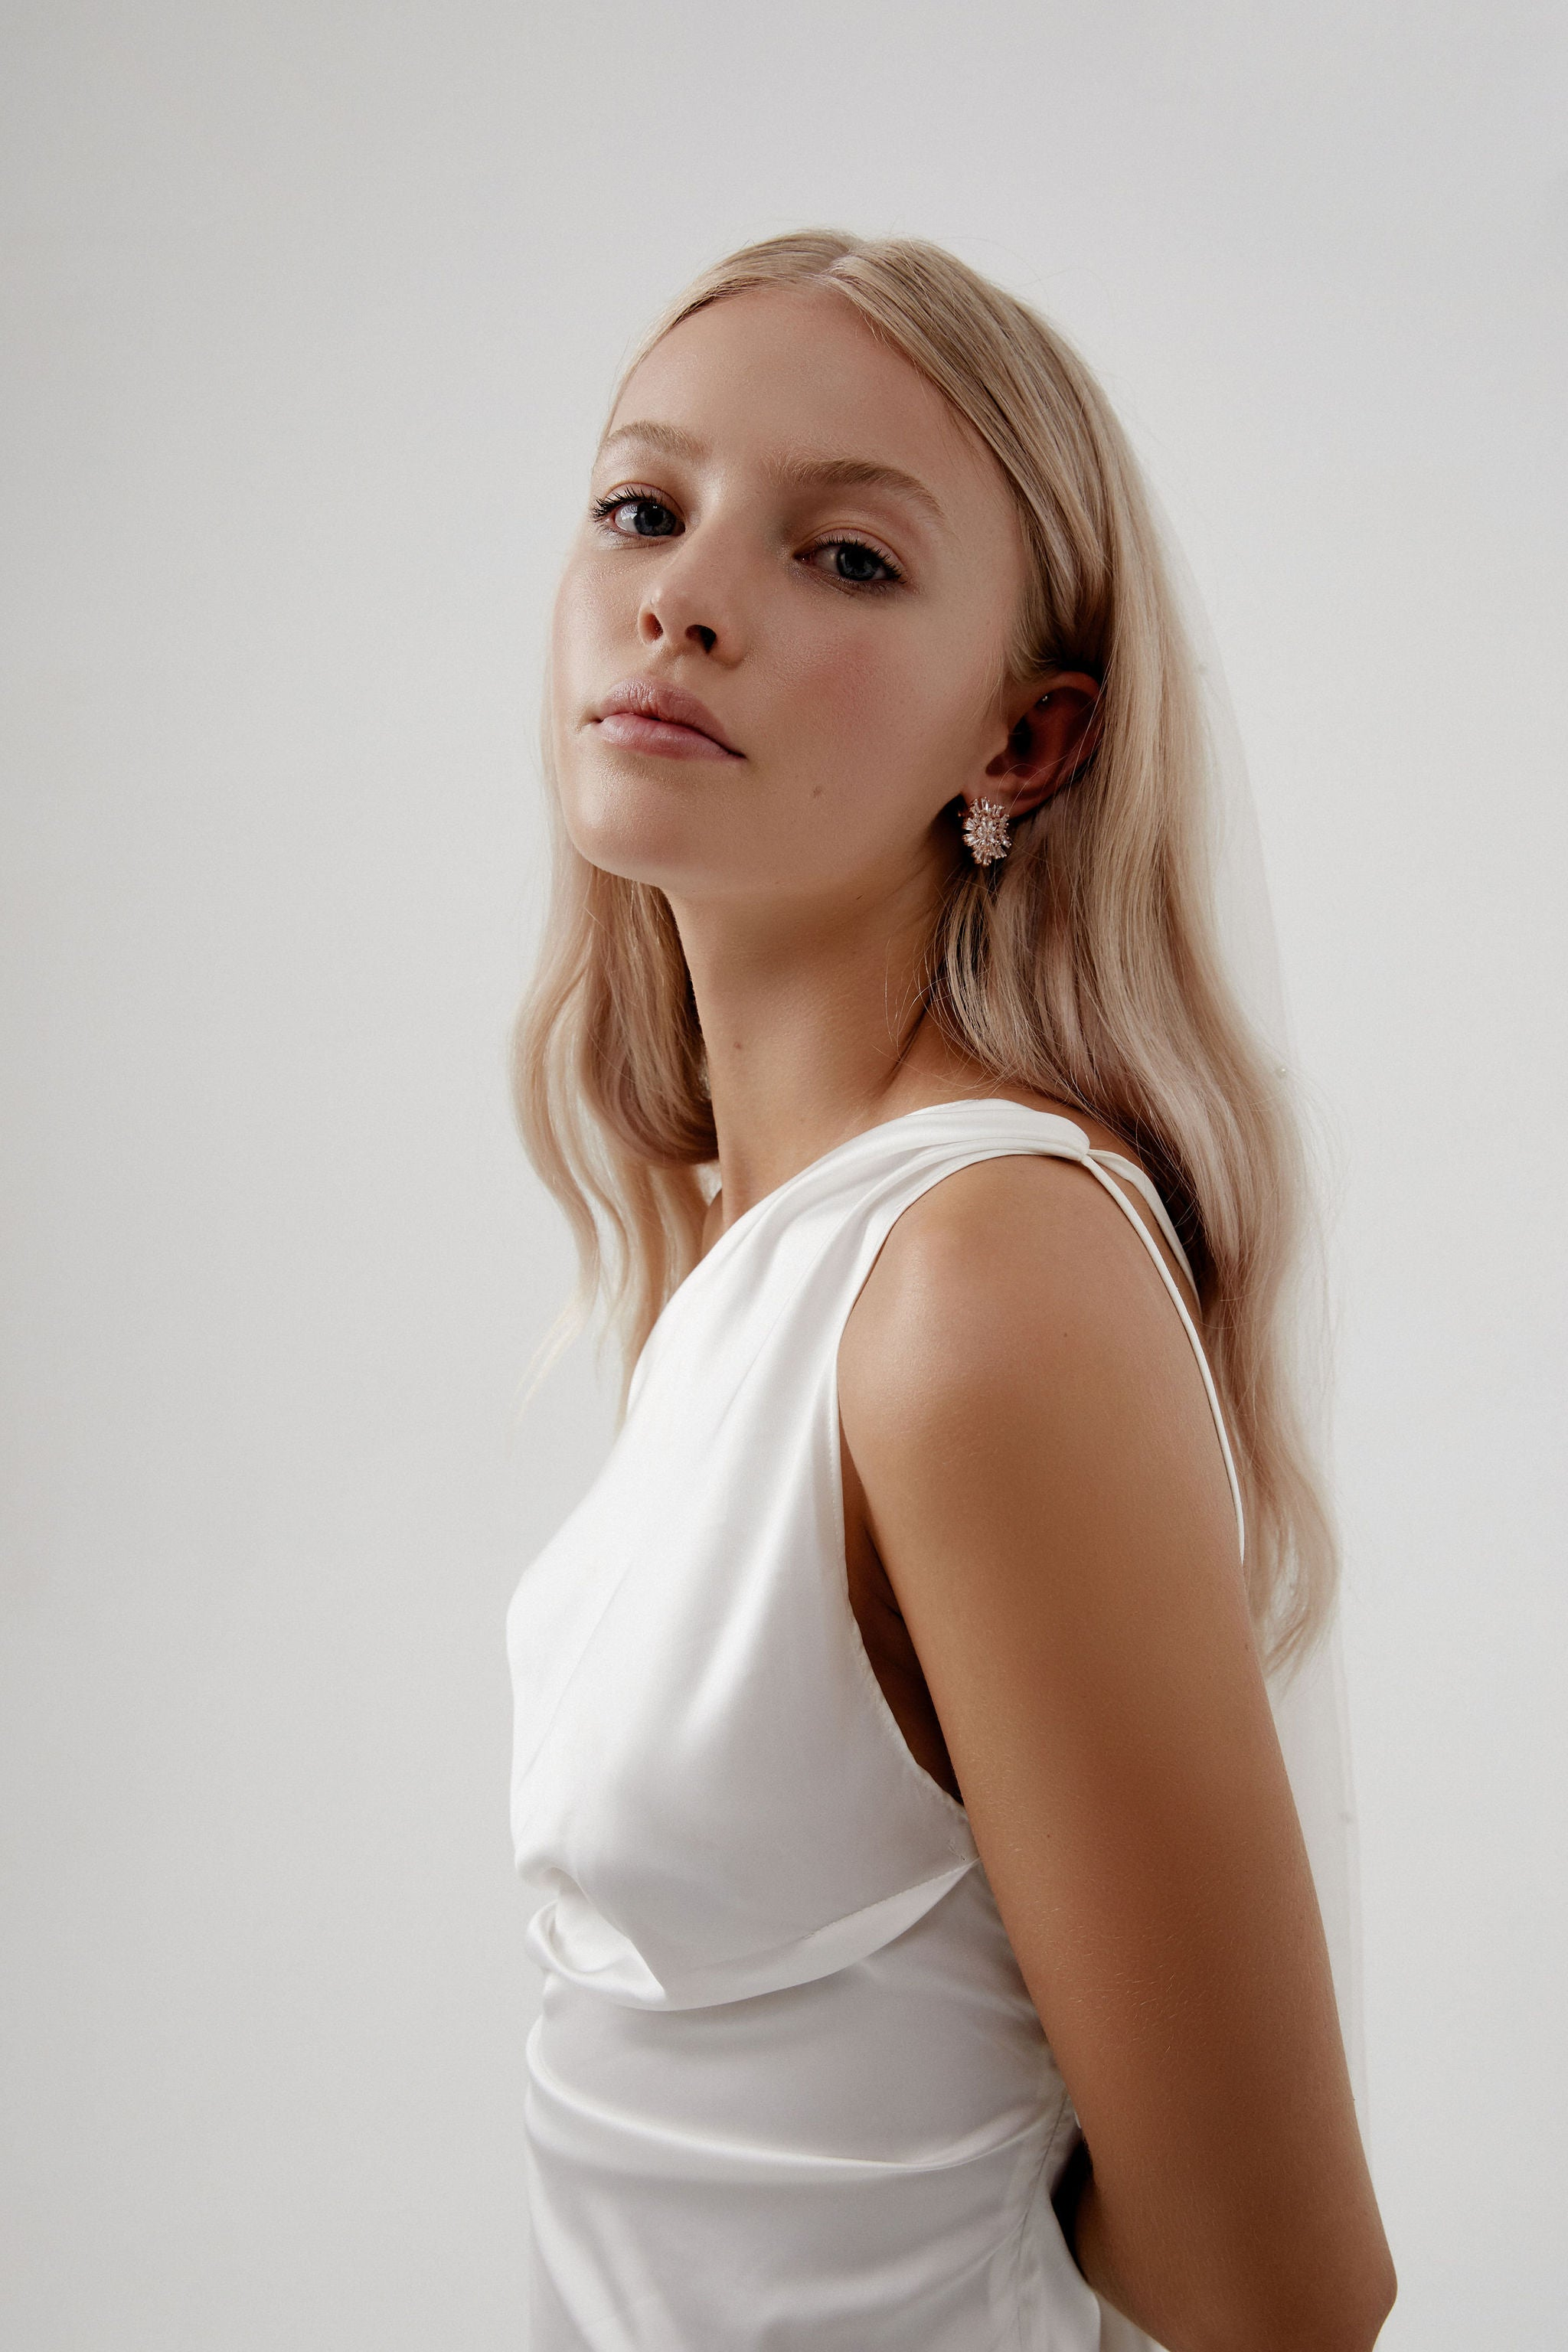 Bridal Floral Earrings for Amelie George bridal campaign 2020